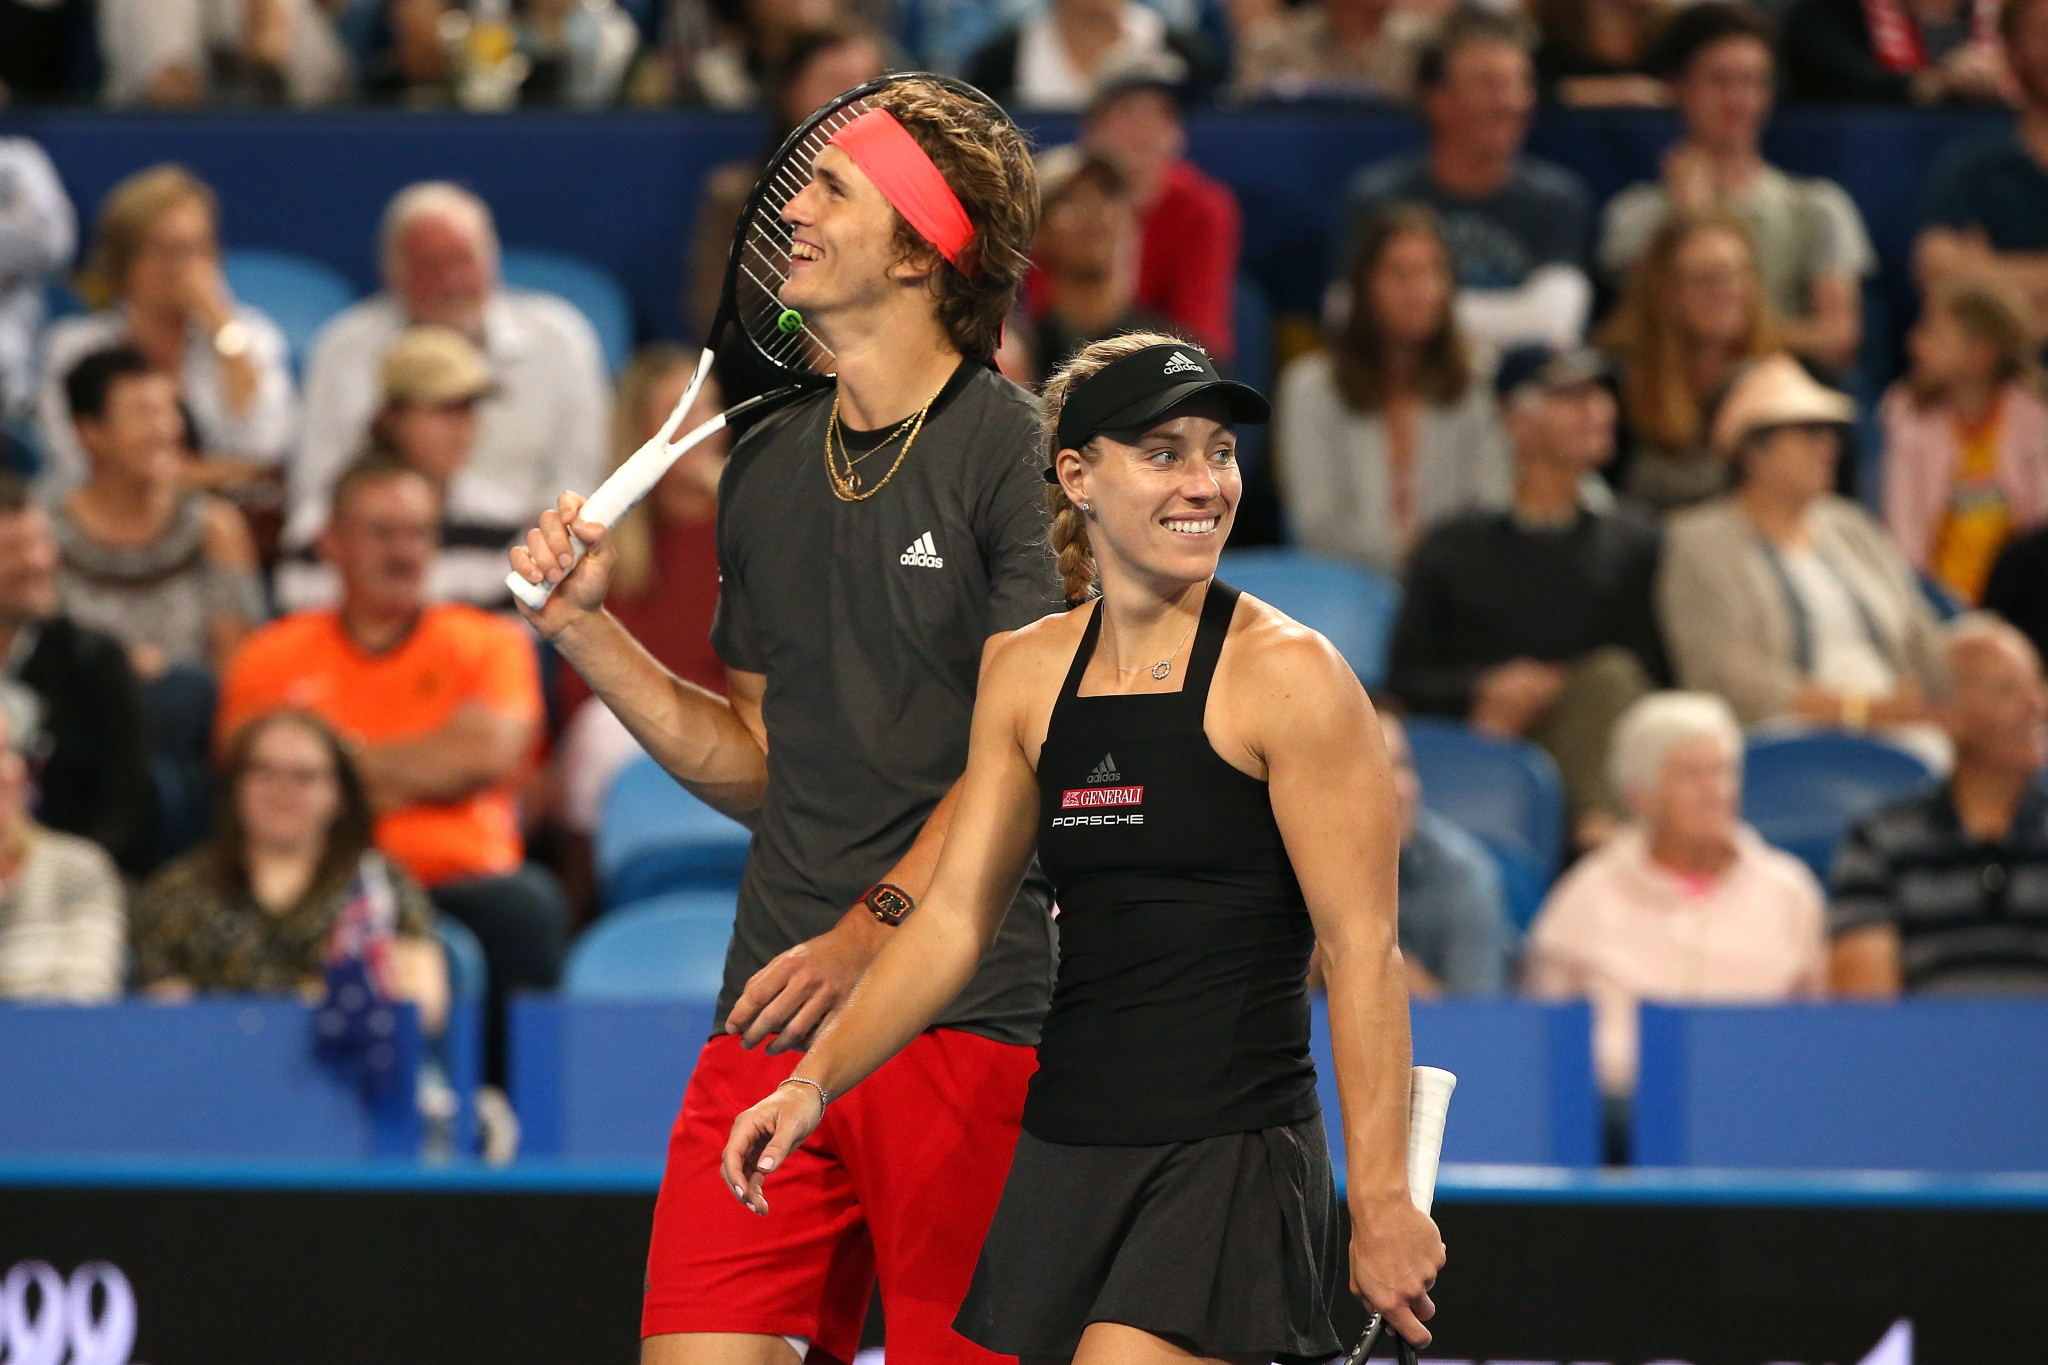 Germany's Alexander Zverev and Angelique Kerber will meet Switzerland in the final of the Hopman Cup in Perth ©Getty Images